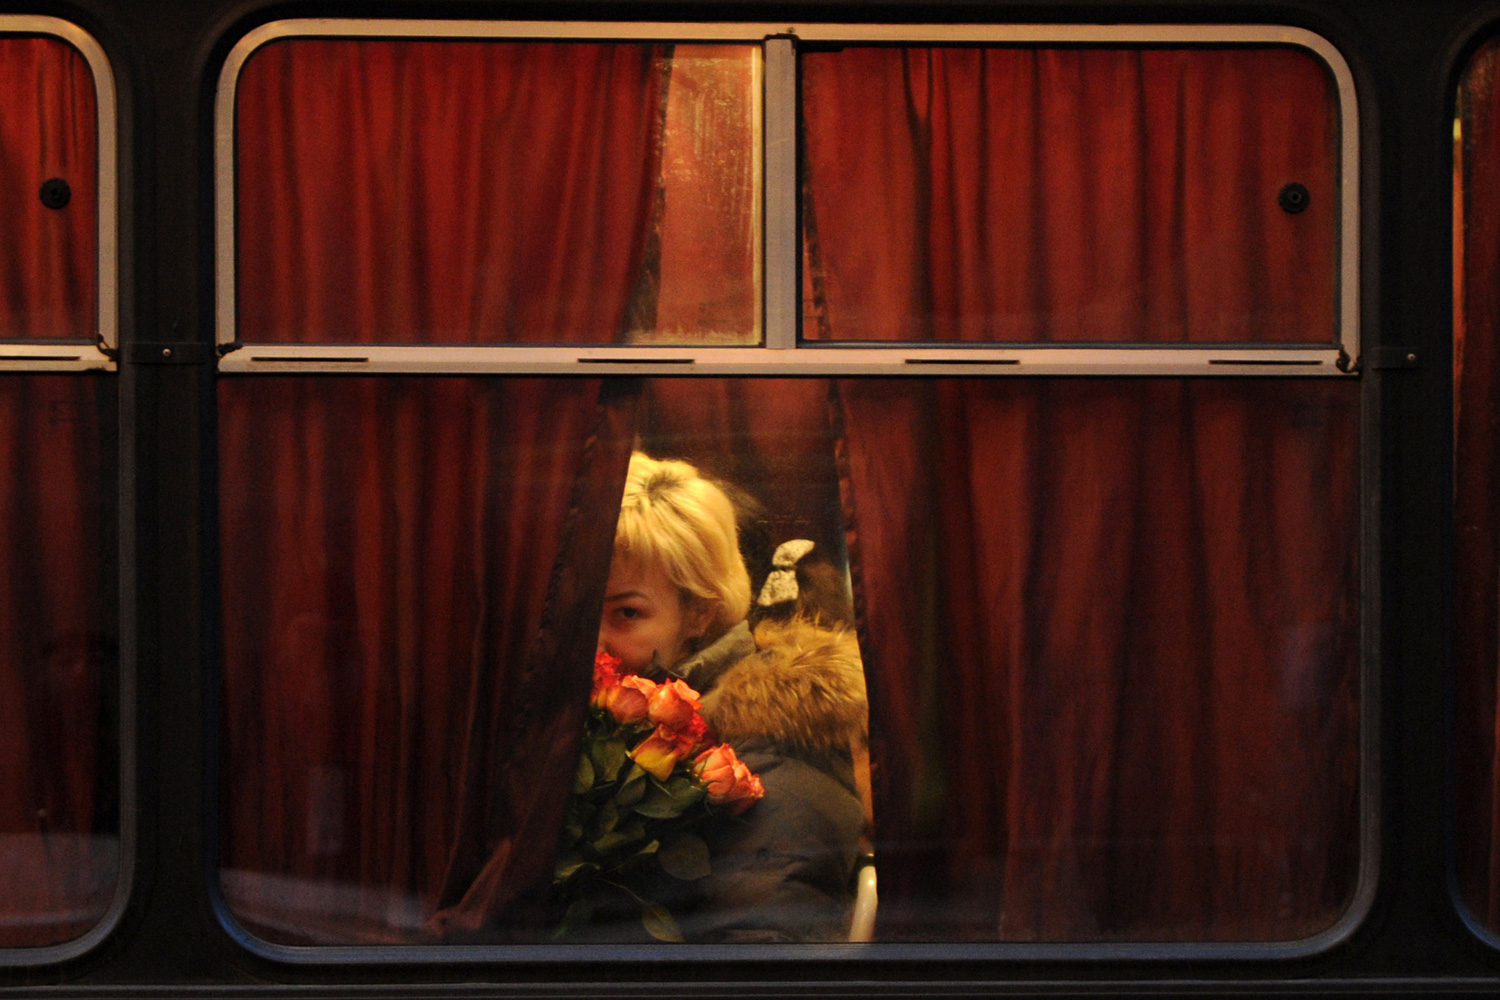 Feb. 28, 2012. An activist of the opposition holds flowers as she sits in a police bus after a rally in front of the Russian Central Election Commission headquarters in Moscow after their attempt to hold an unauthorized protest against the upcoming March presidential poll.